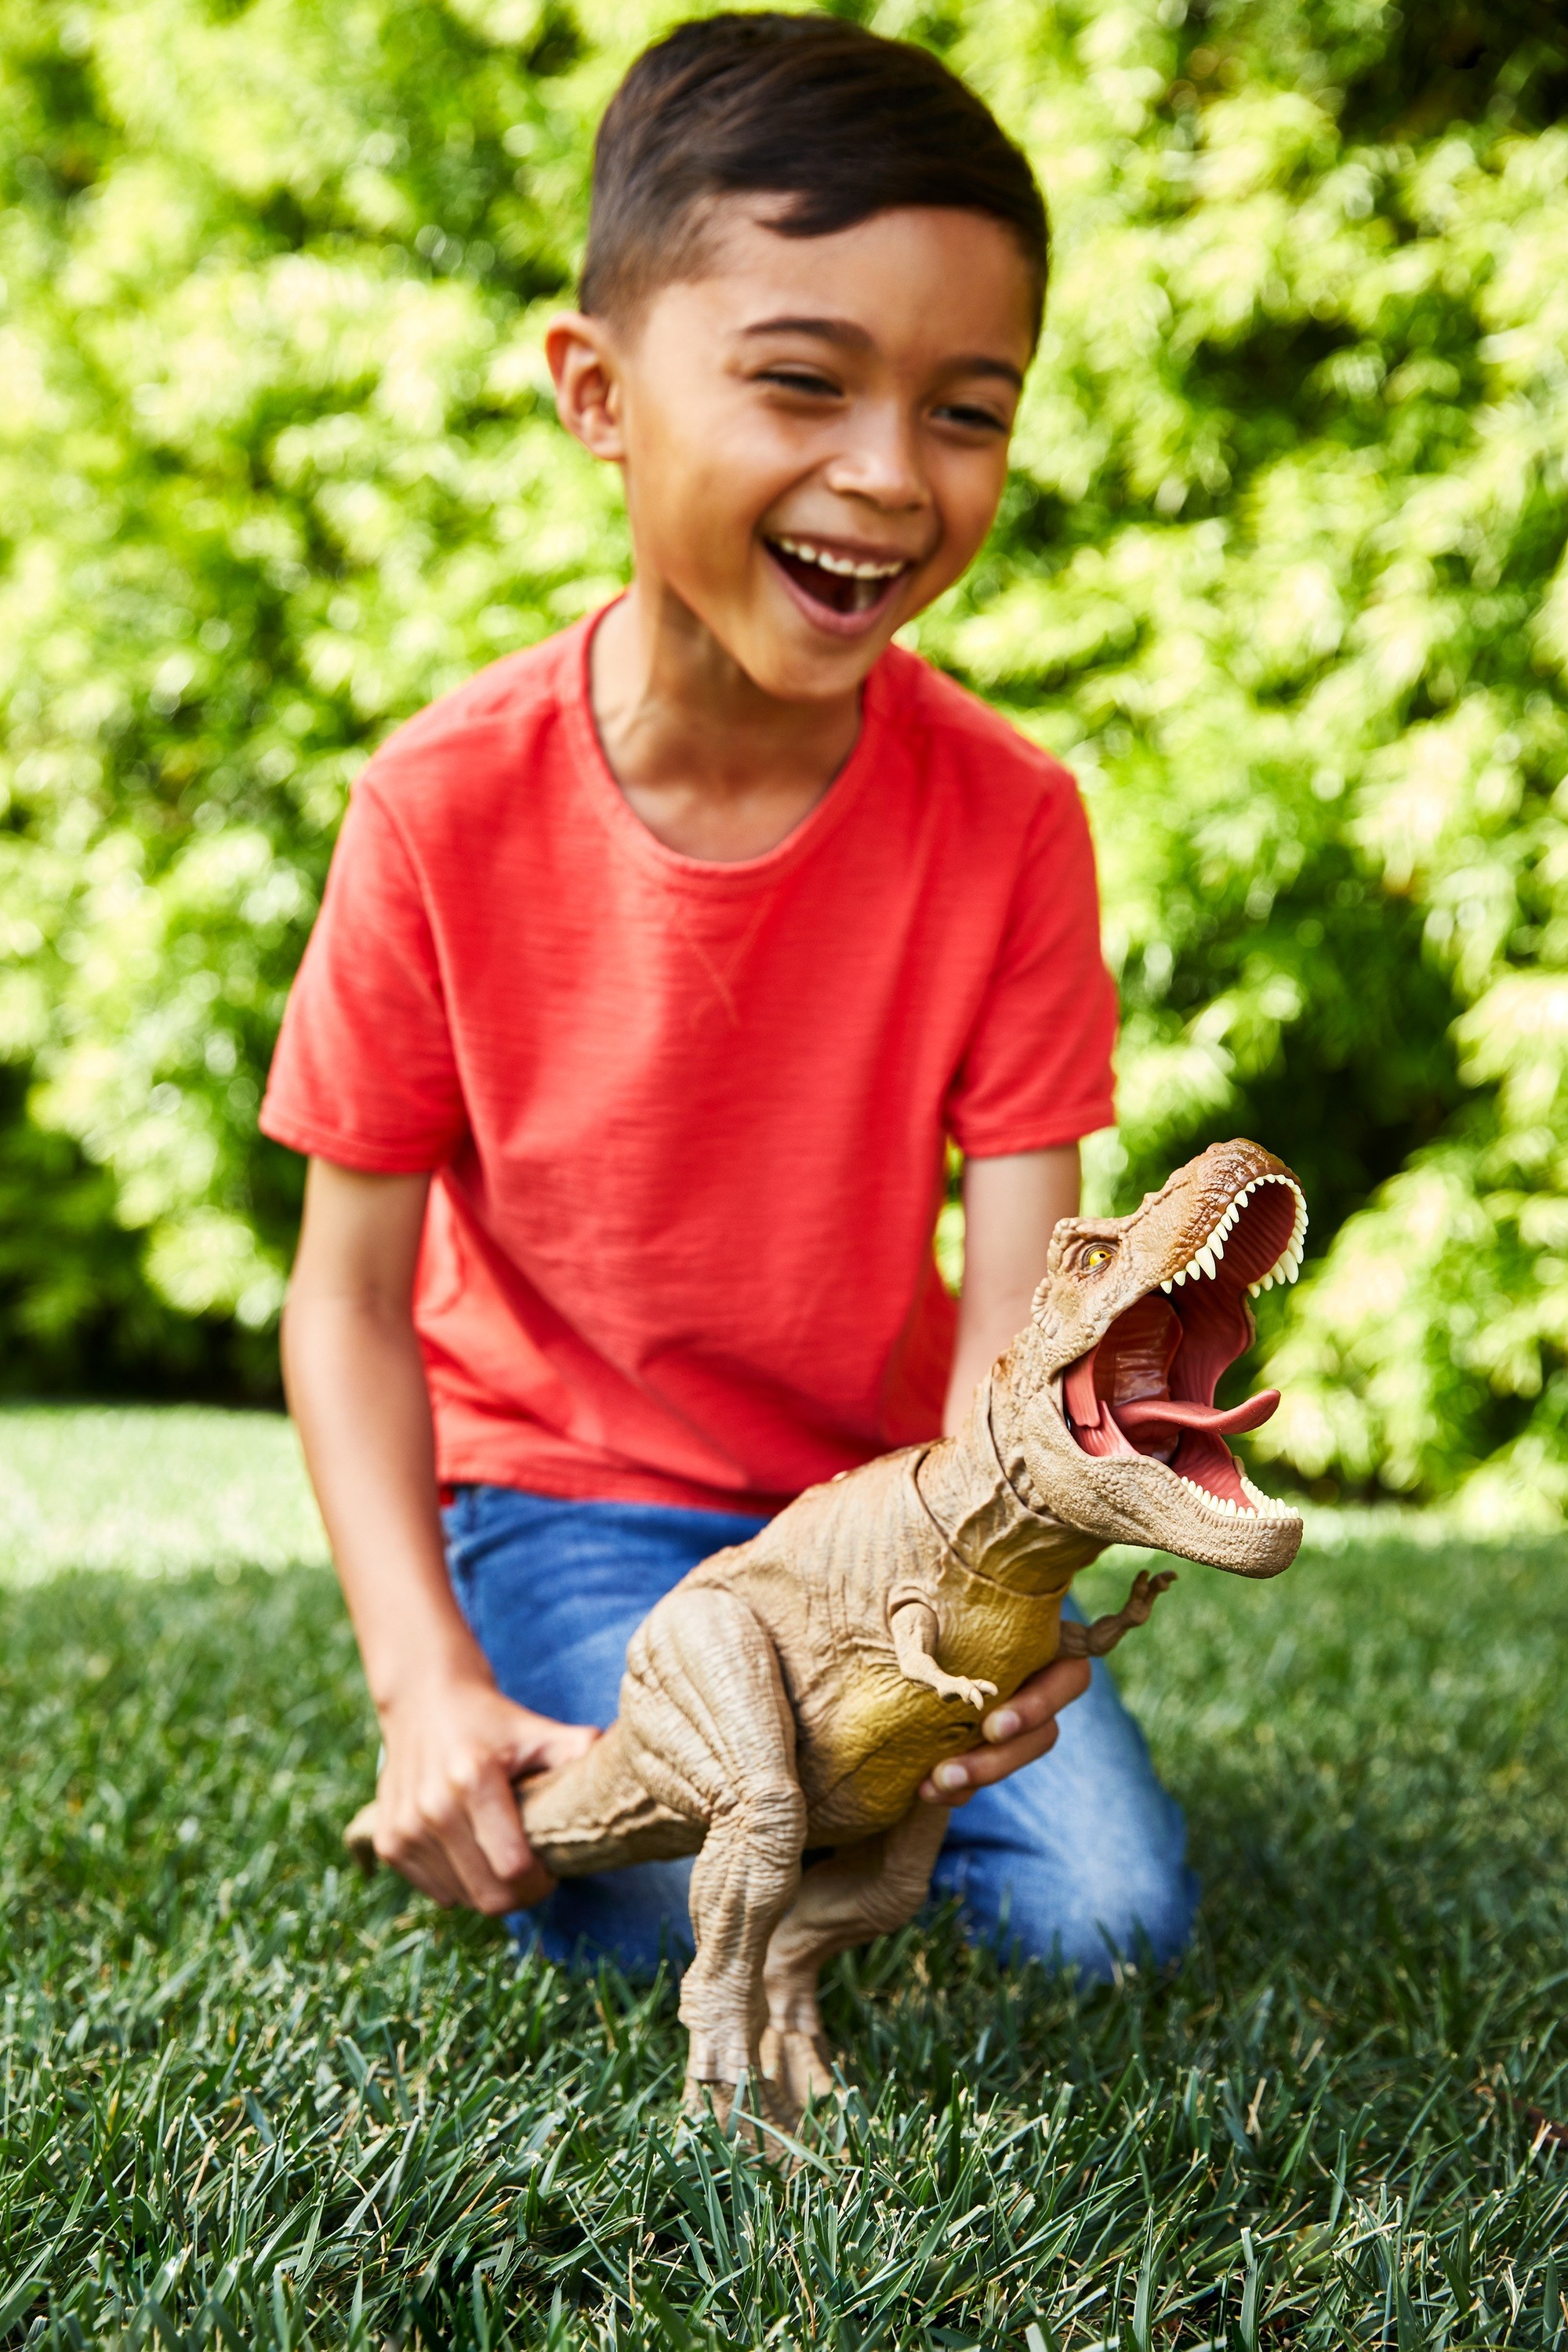 kid playing with a t rex figure from jurassic world while in the grass